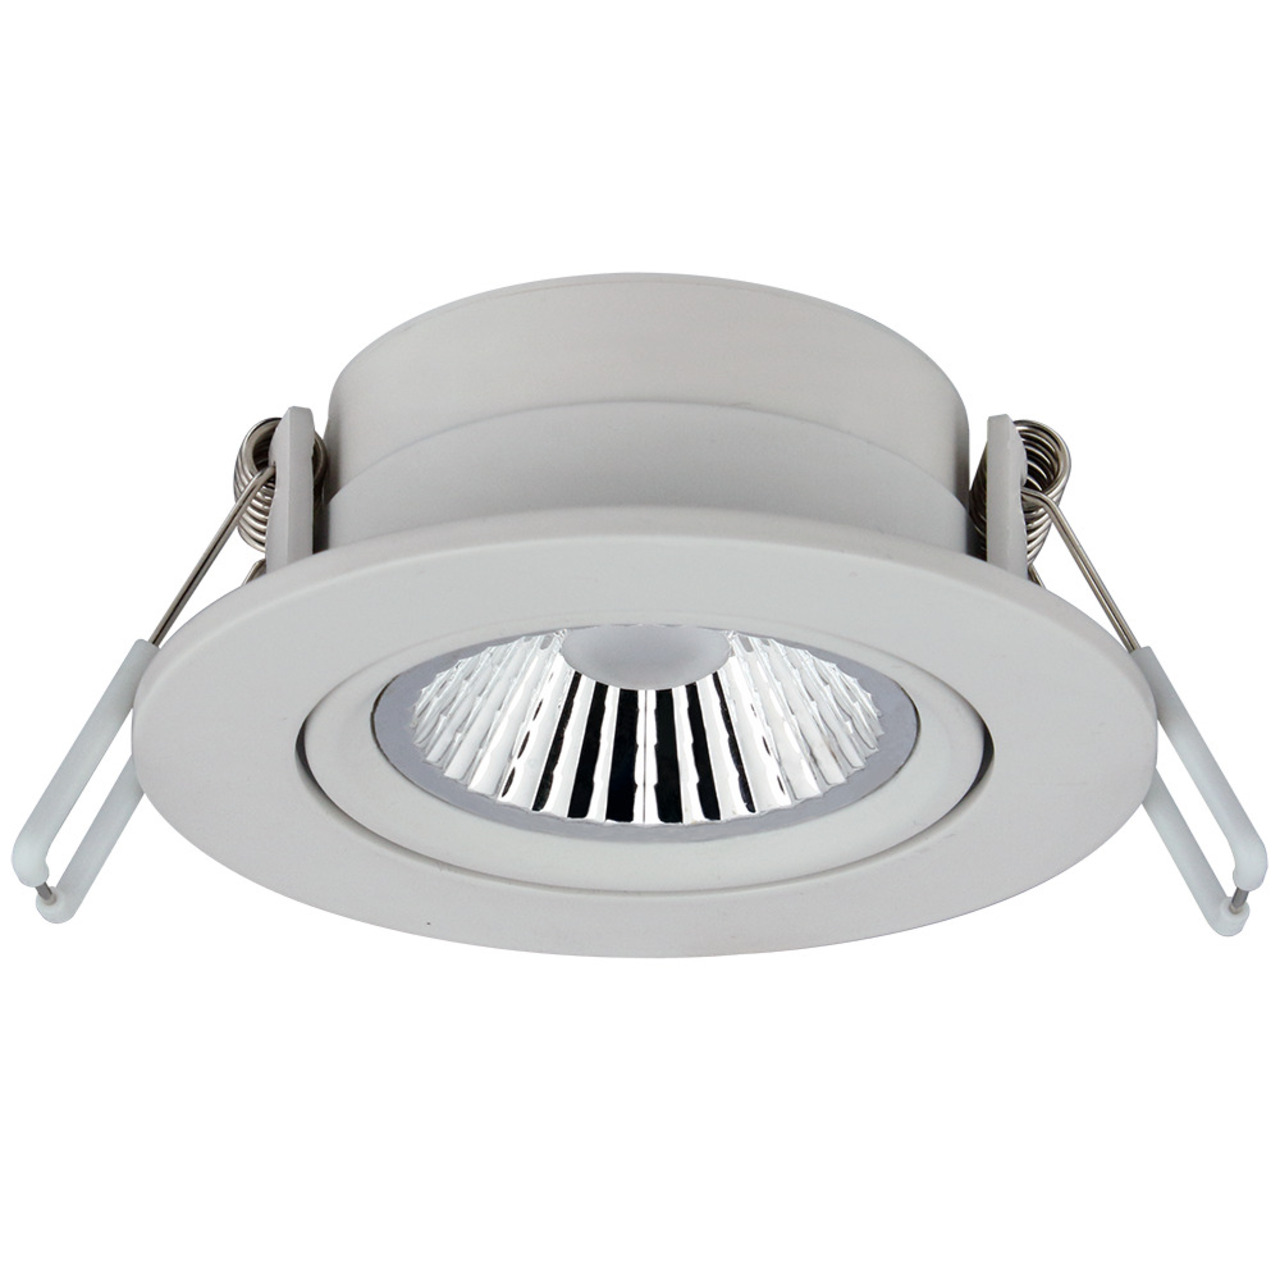 CV-Lighting 6-W-LED-Downlight- warmweiund-223 - 36und-176 - dimmbar (dim to warm)- weiund-223